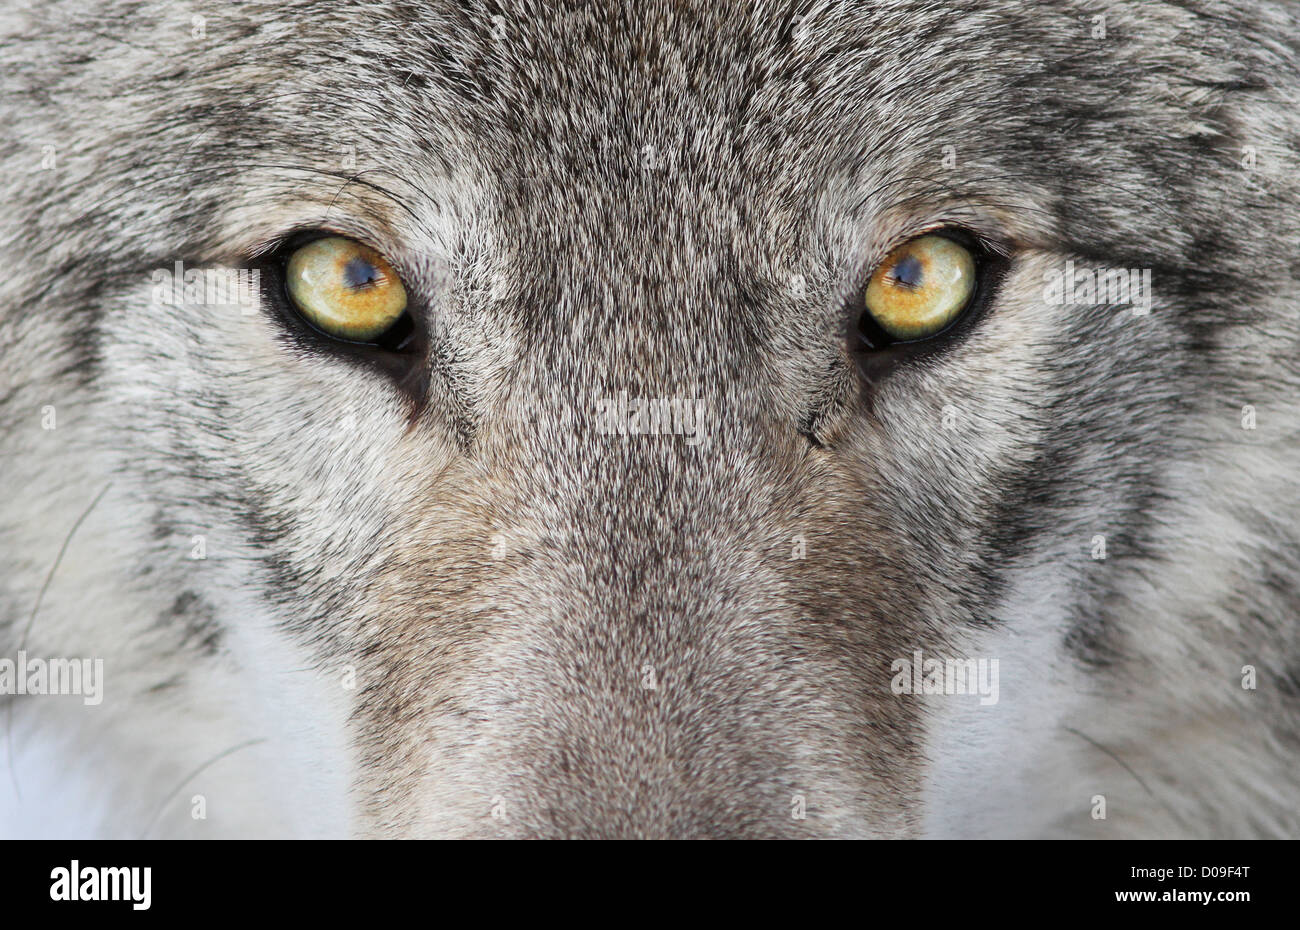 A close-up photo of a menacing wolf with a yellow eyes. - Stock Image